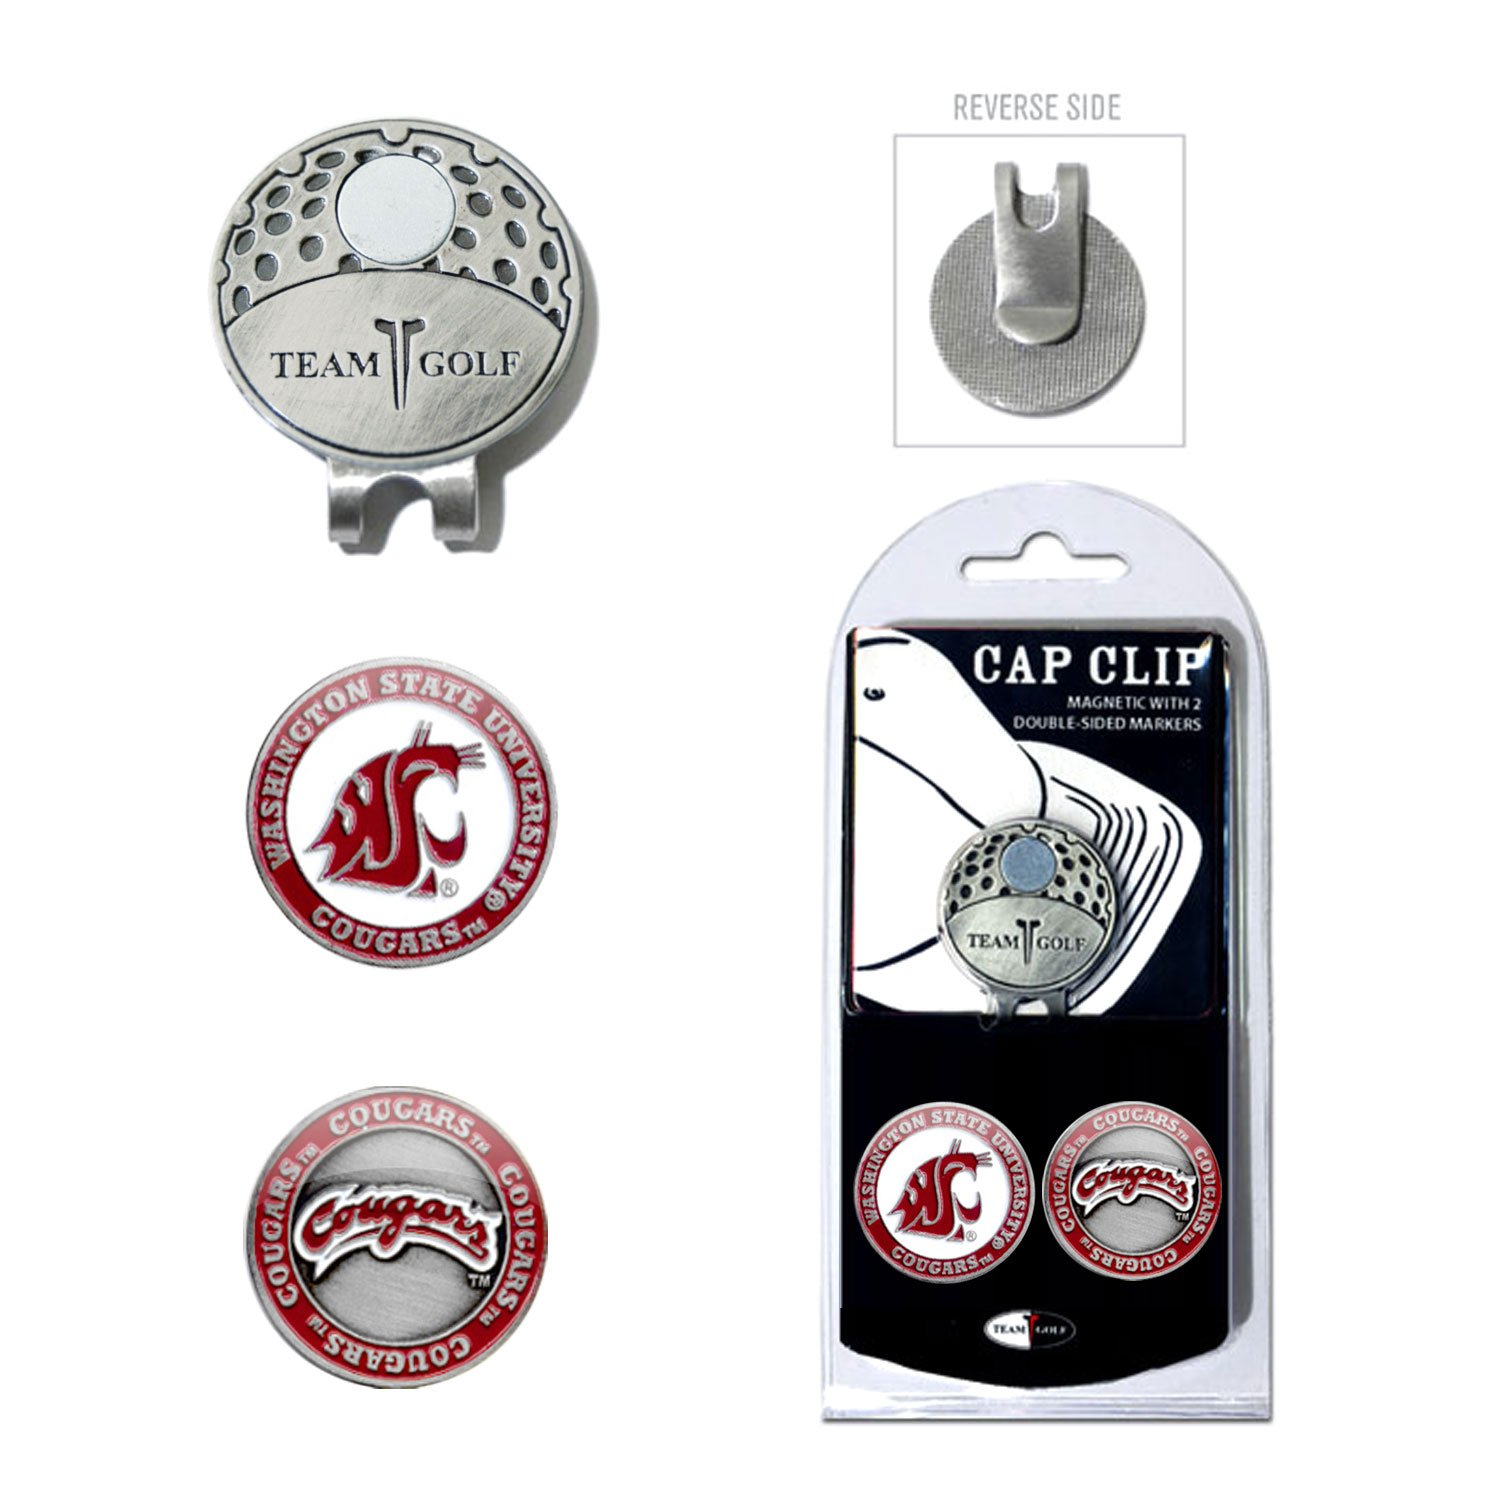 fdd0a6cd165 Amazon.com   Team Golf NCAA Alabama Crimson Tide Golf Cap Clip with 2  Removable Double-Sided Enamel Magnetic Ball Markers